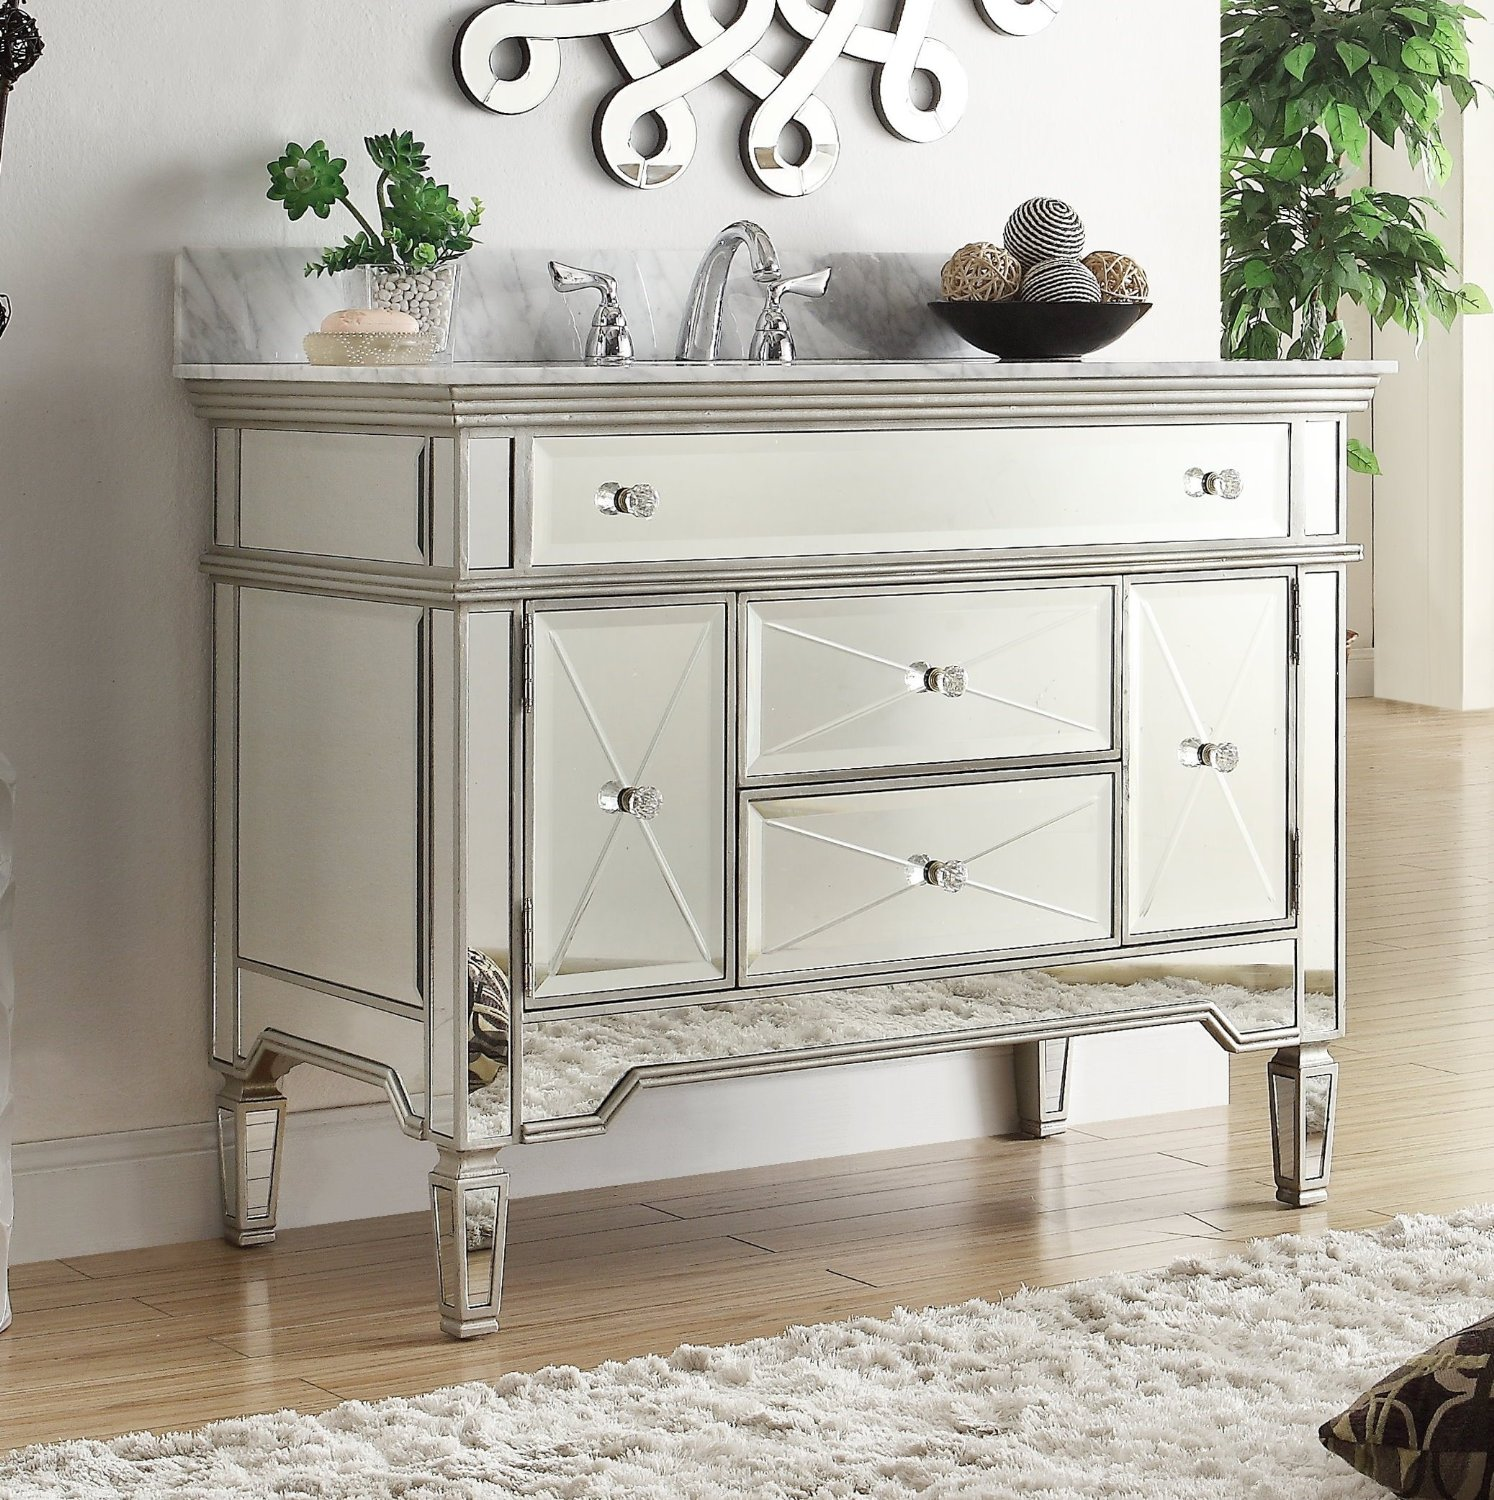 Wonderful Adelina 44 Inch Mirrored Bathroom Vanity Carrara Marble Top ...